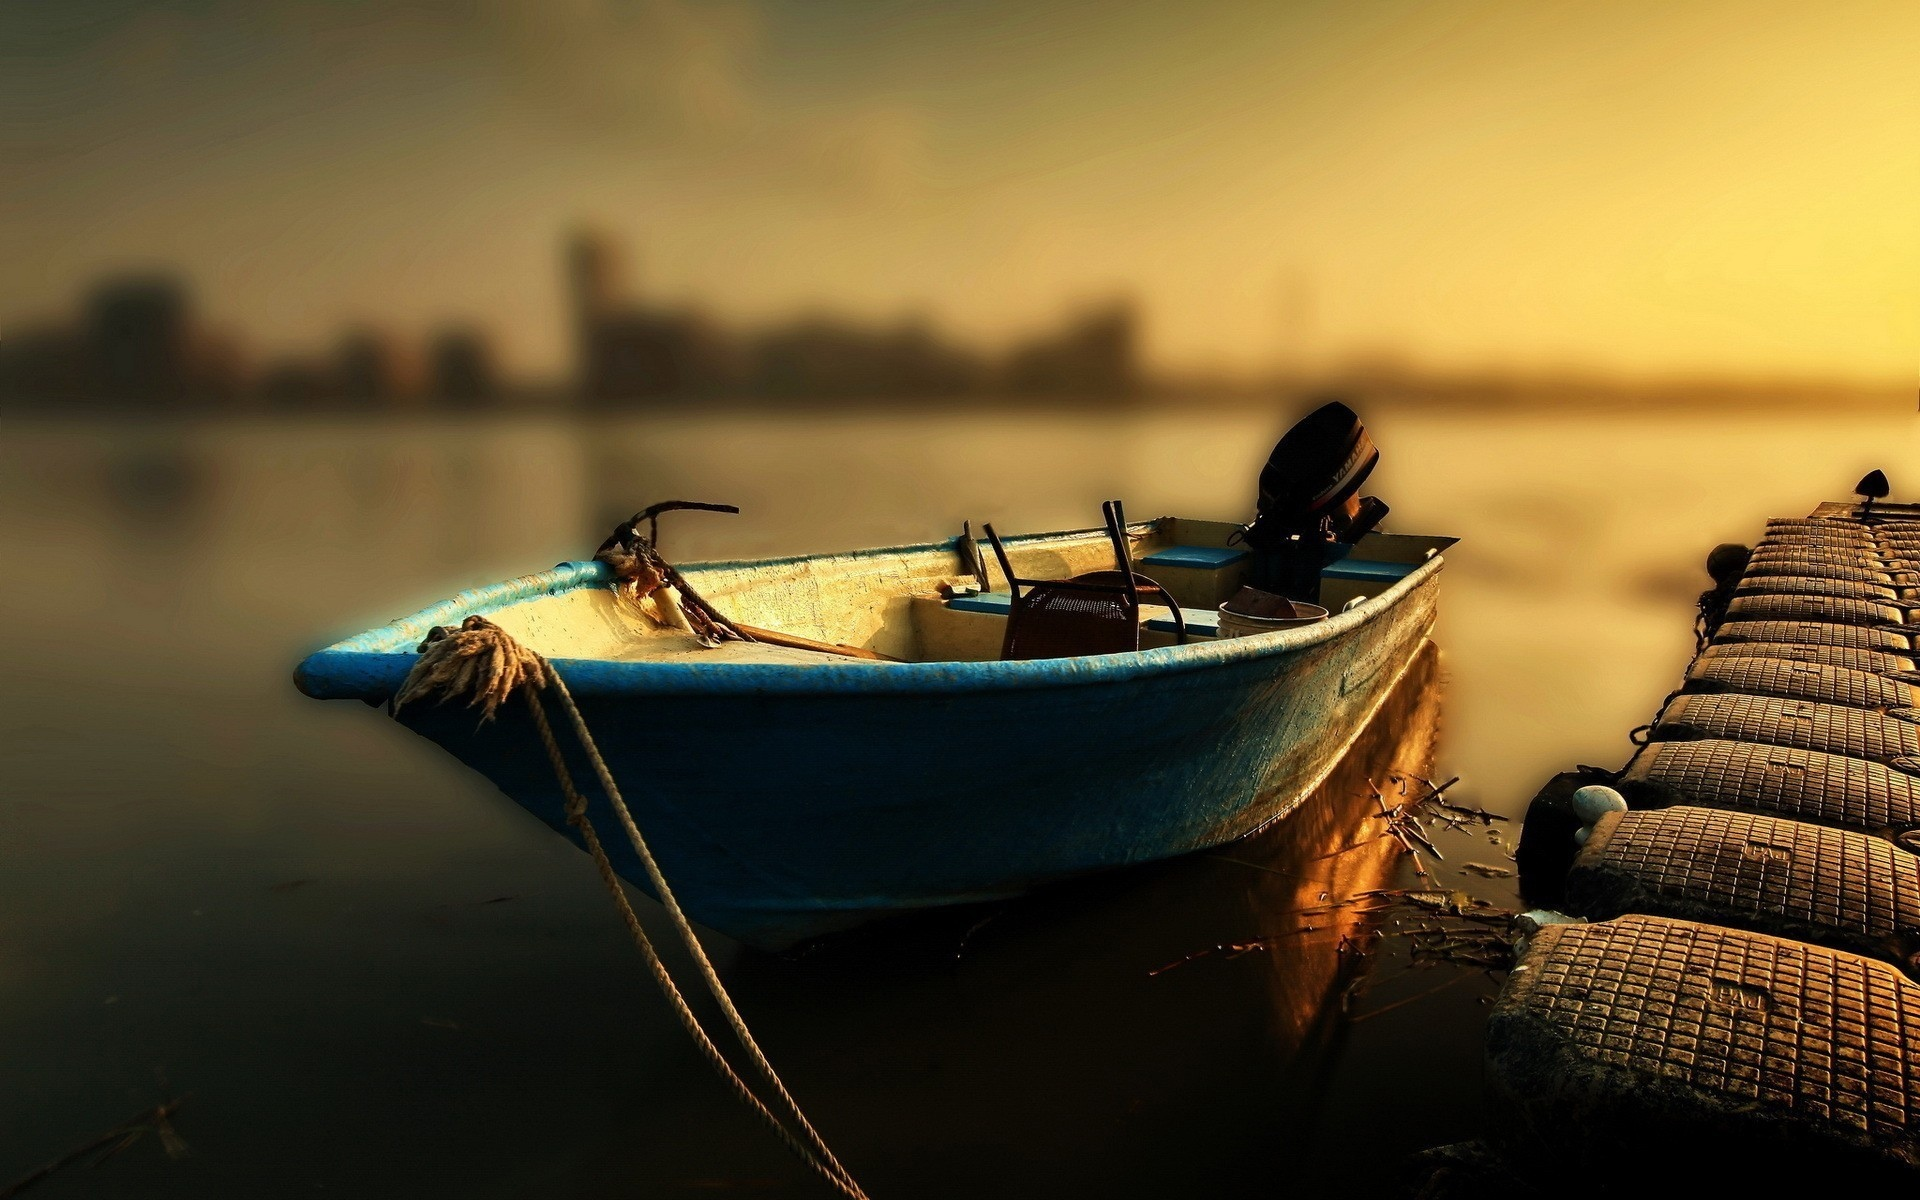 Boat Full HD Wallpaper and Background 1920x1200 ID309326